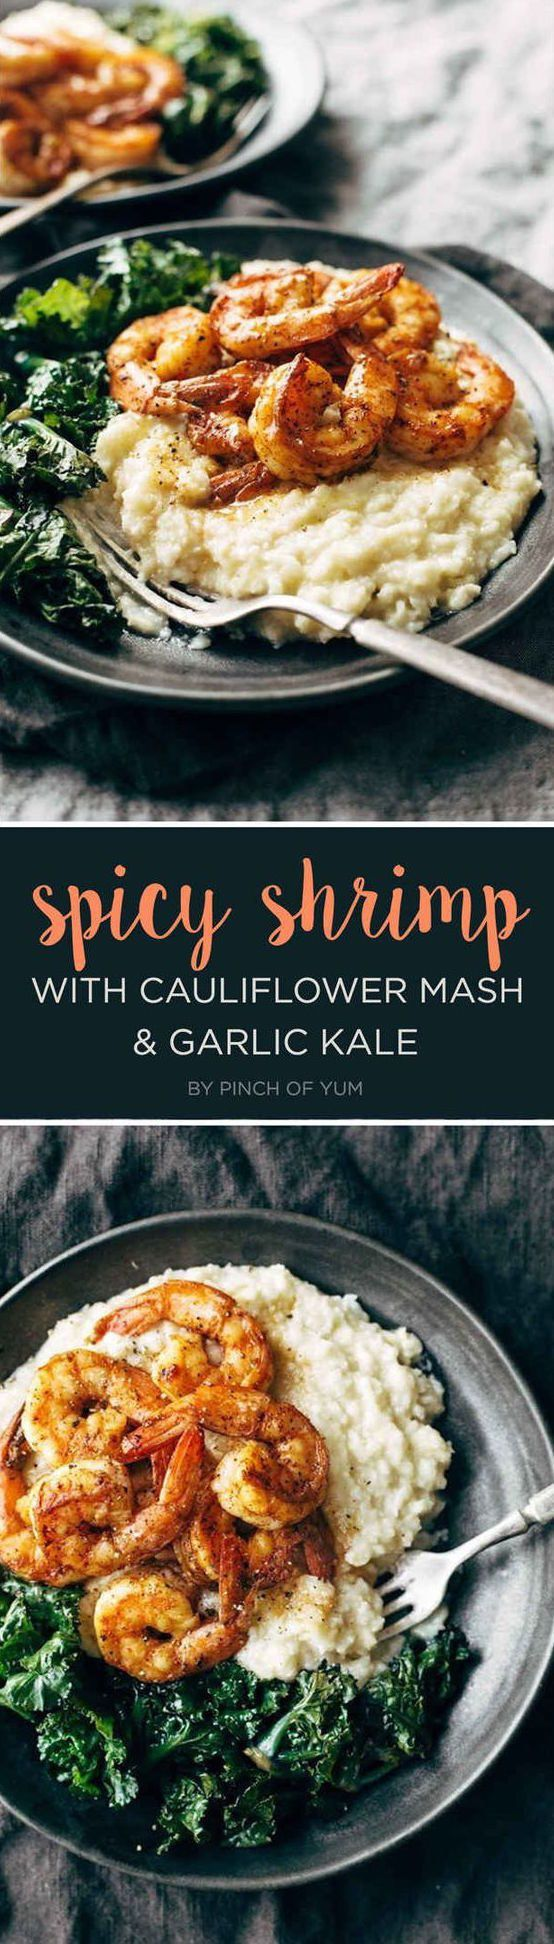 Spicy Shrimp with Garlic Kale and Cauliflower Mash | 7 Tasty Dinner Recipes You'll Want To Bookmark